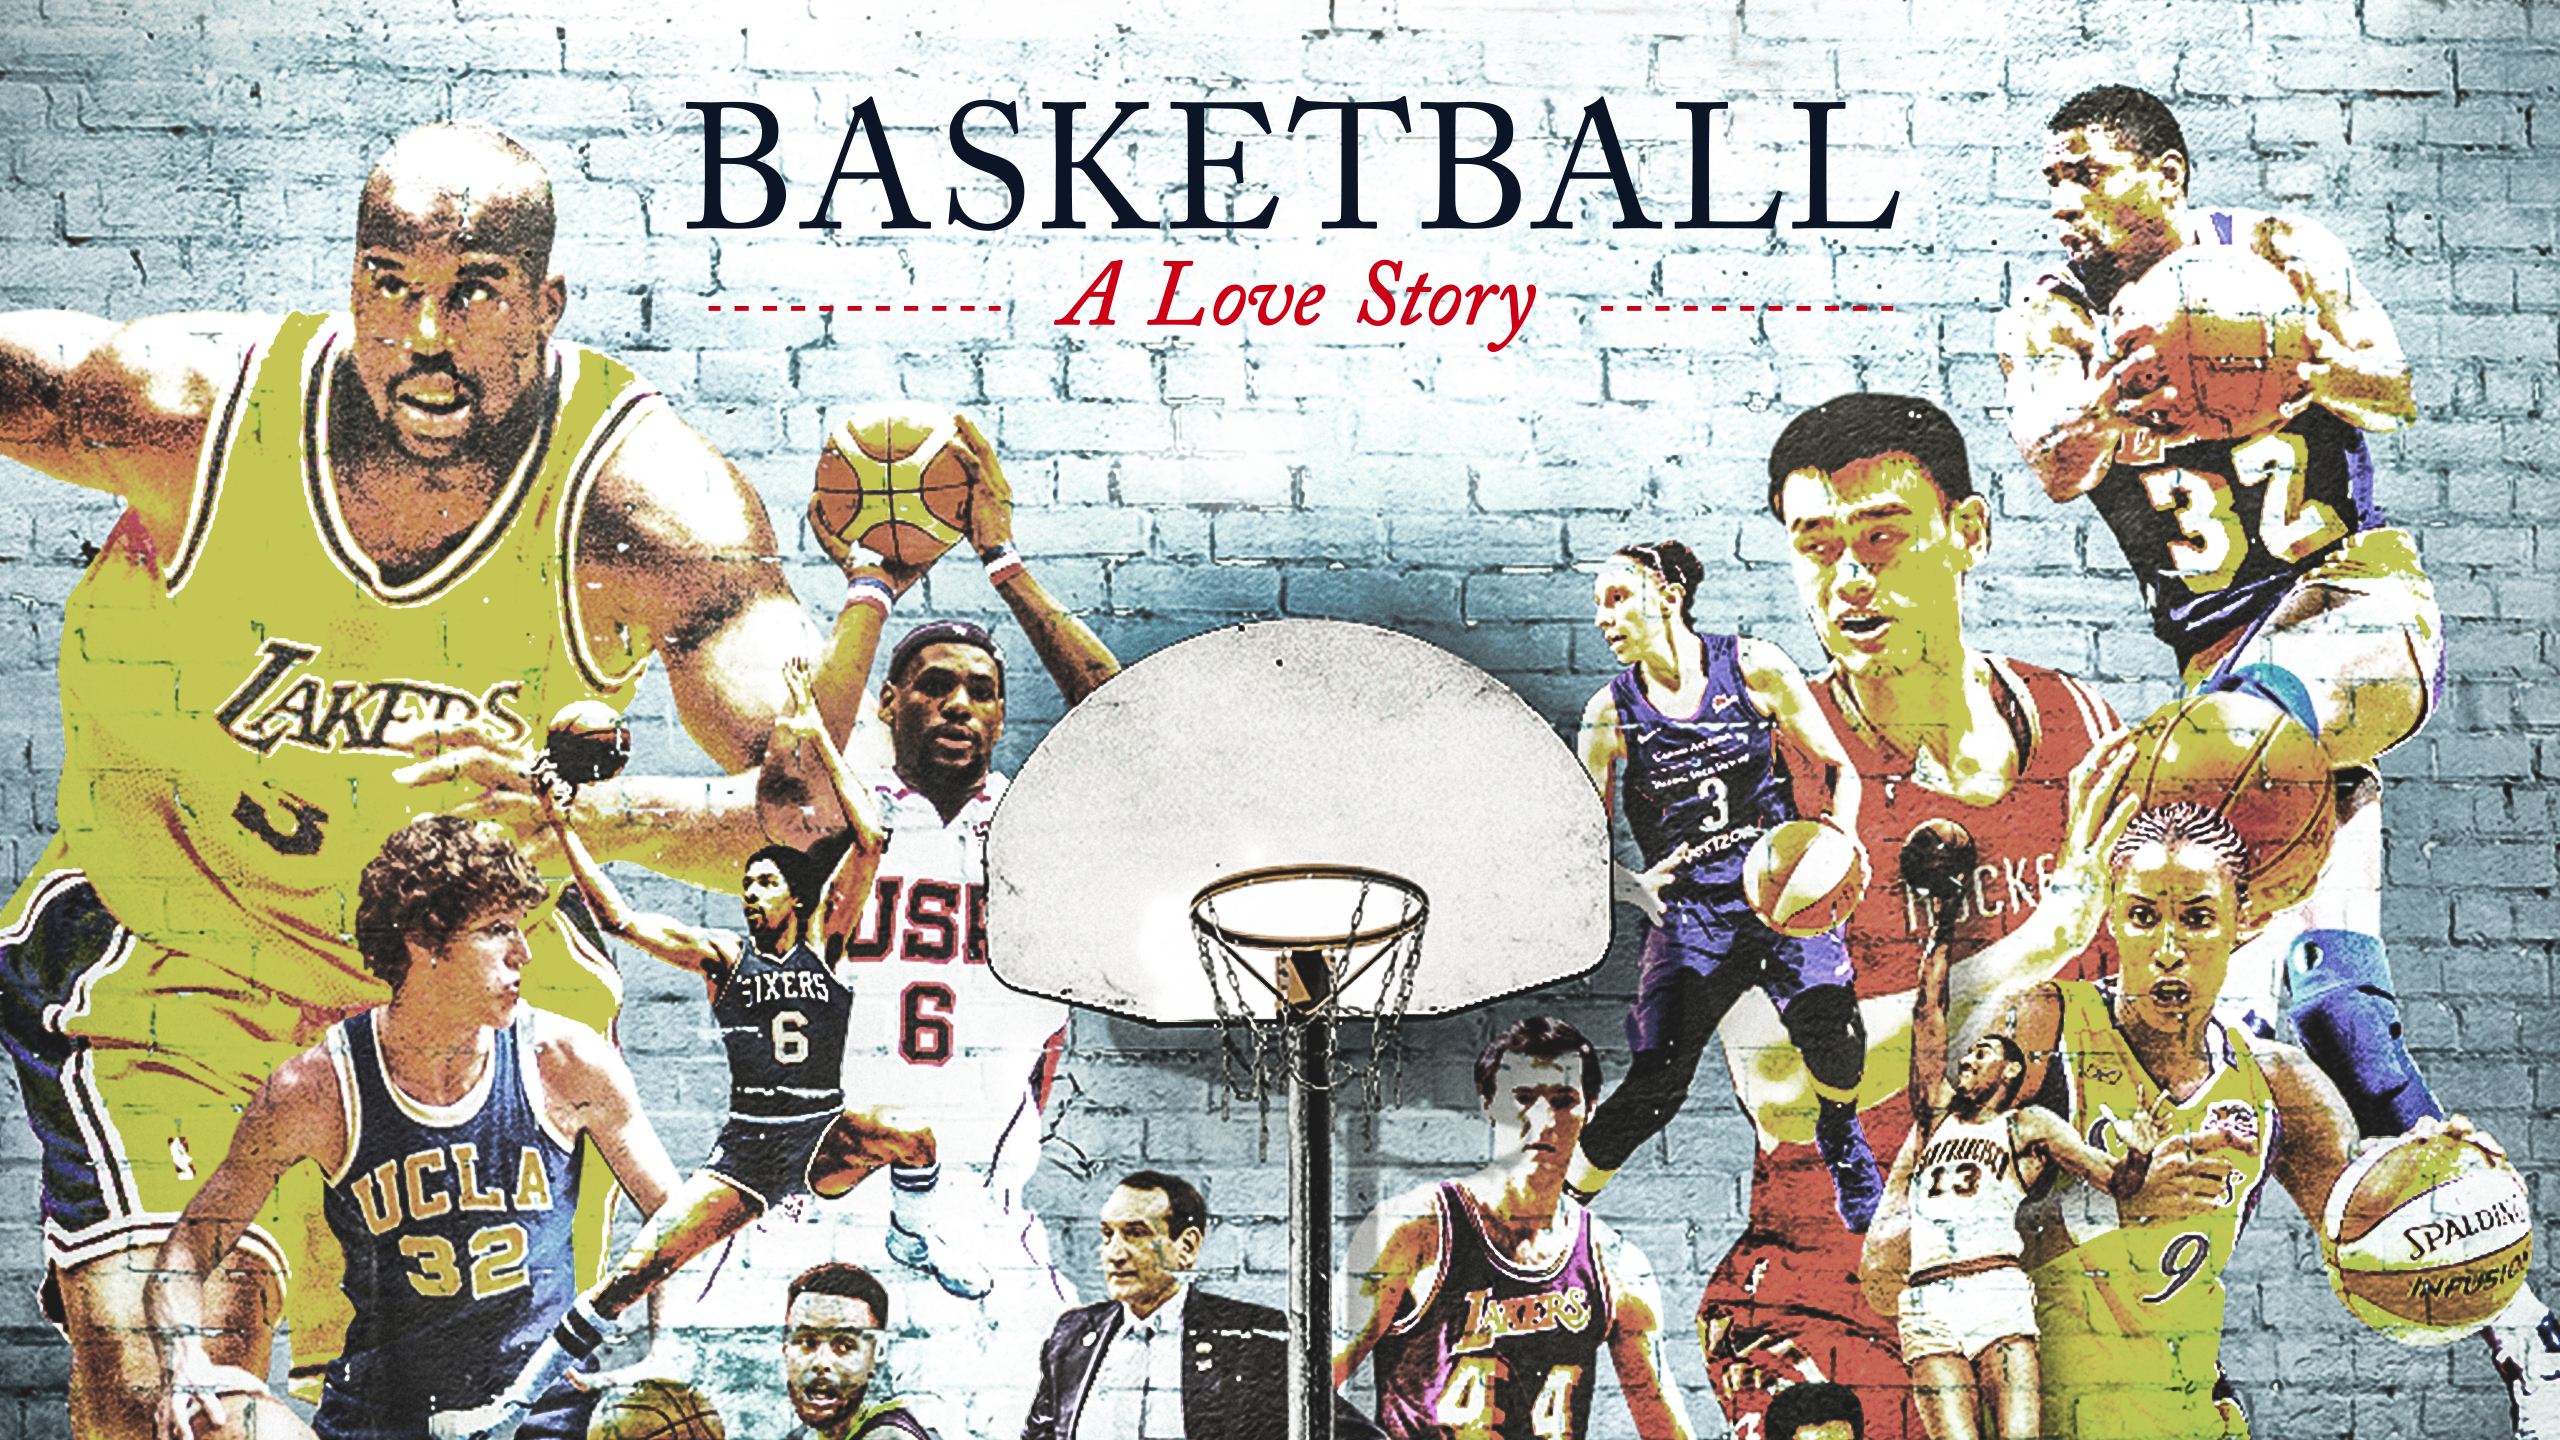 Basketball: A Love Story - Episode 3